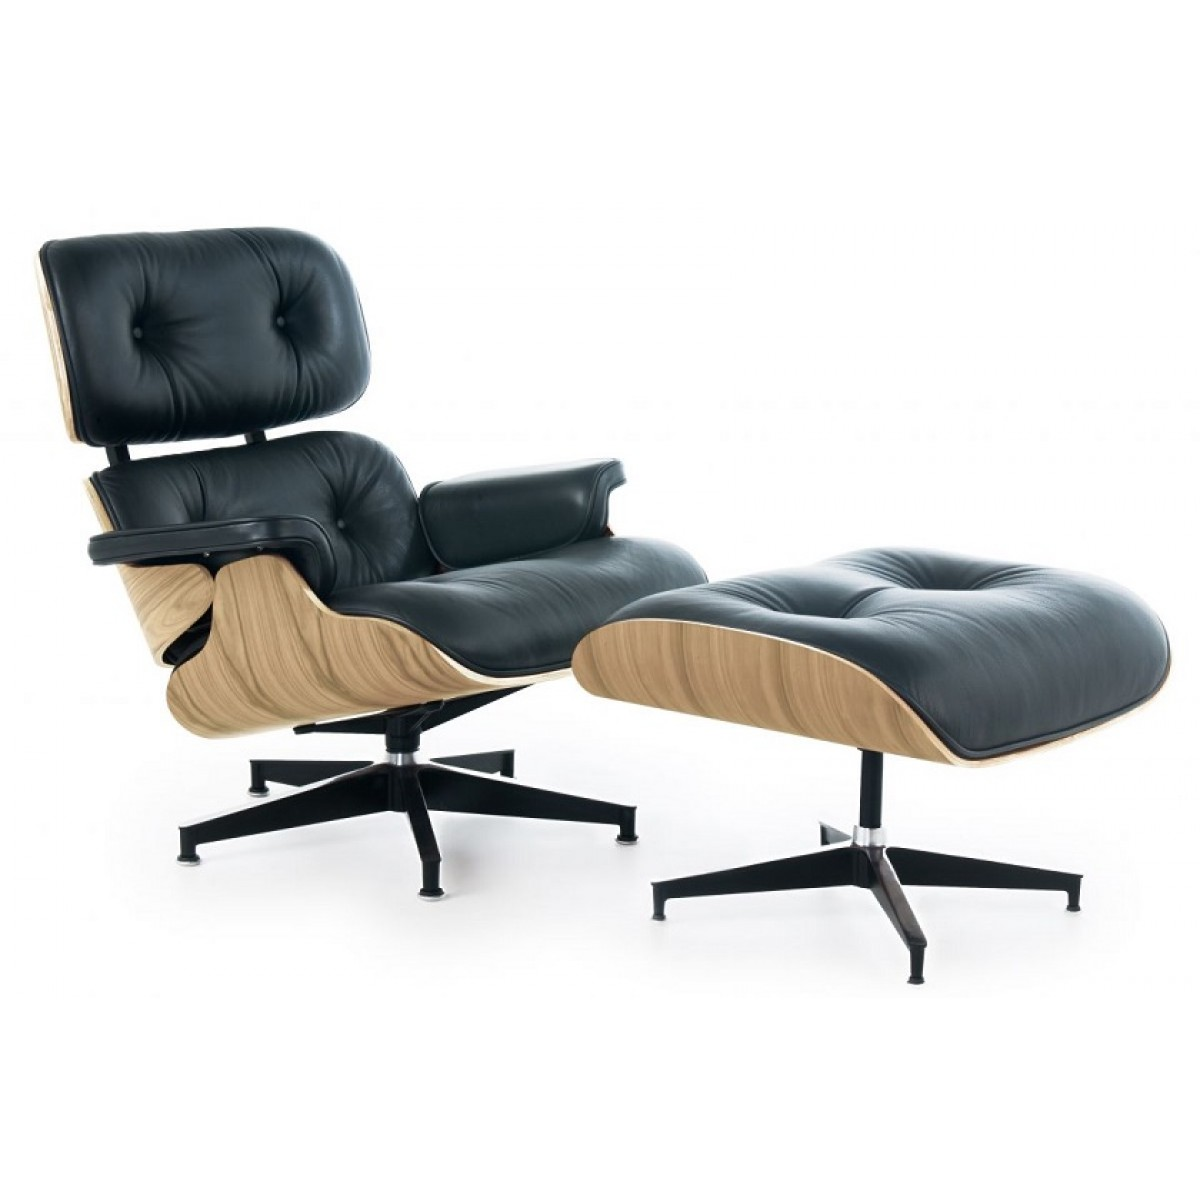 Eames Style Lounge Chair and Ottoman Black Leather Oak  : Eames Elephant BLACK Base1 SIDE 1200x1200 from www.modborn.com size 1200 x 1200 jpeg 101kB